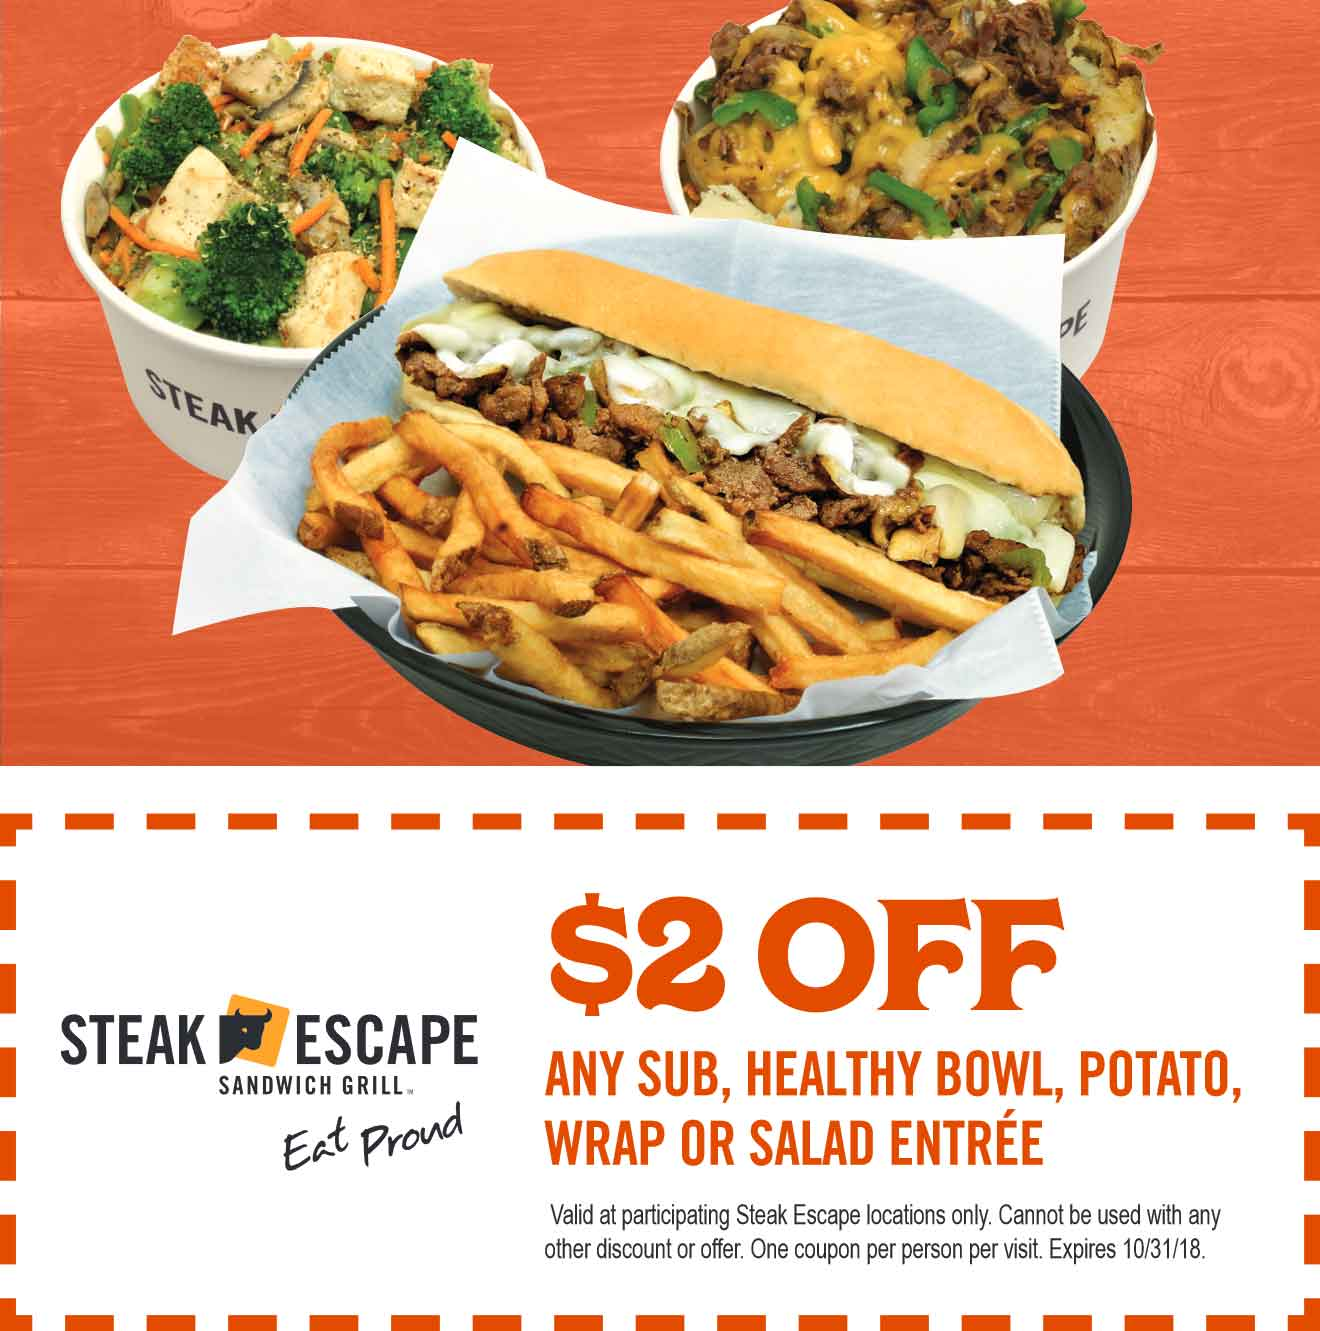 Steak Escape Coupon April 2019 $2 off subs, bowls, wraps & salads at Steak Escape restaurants